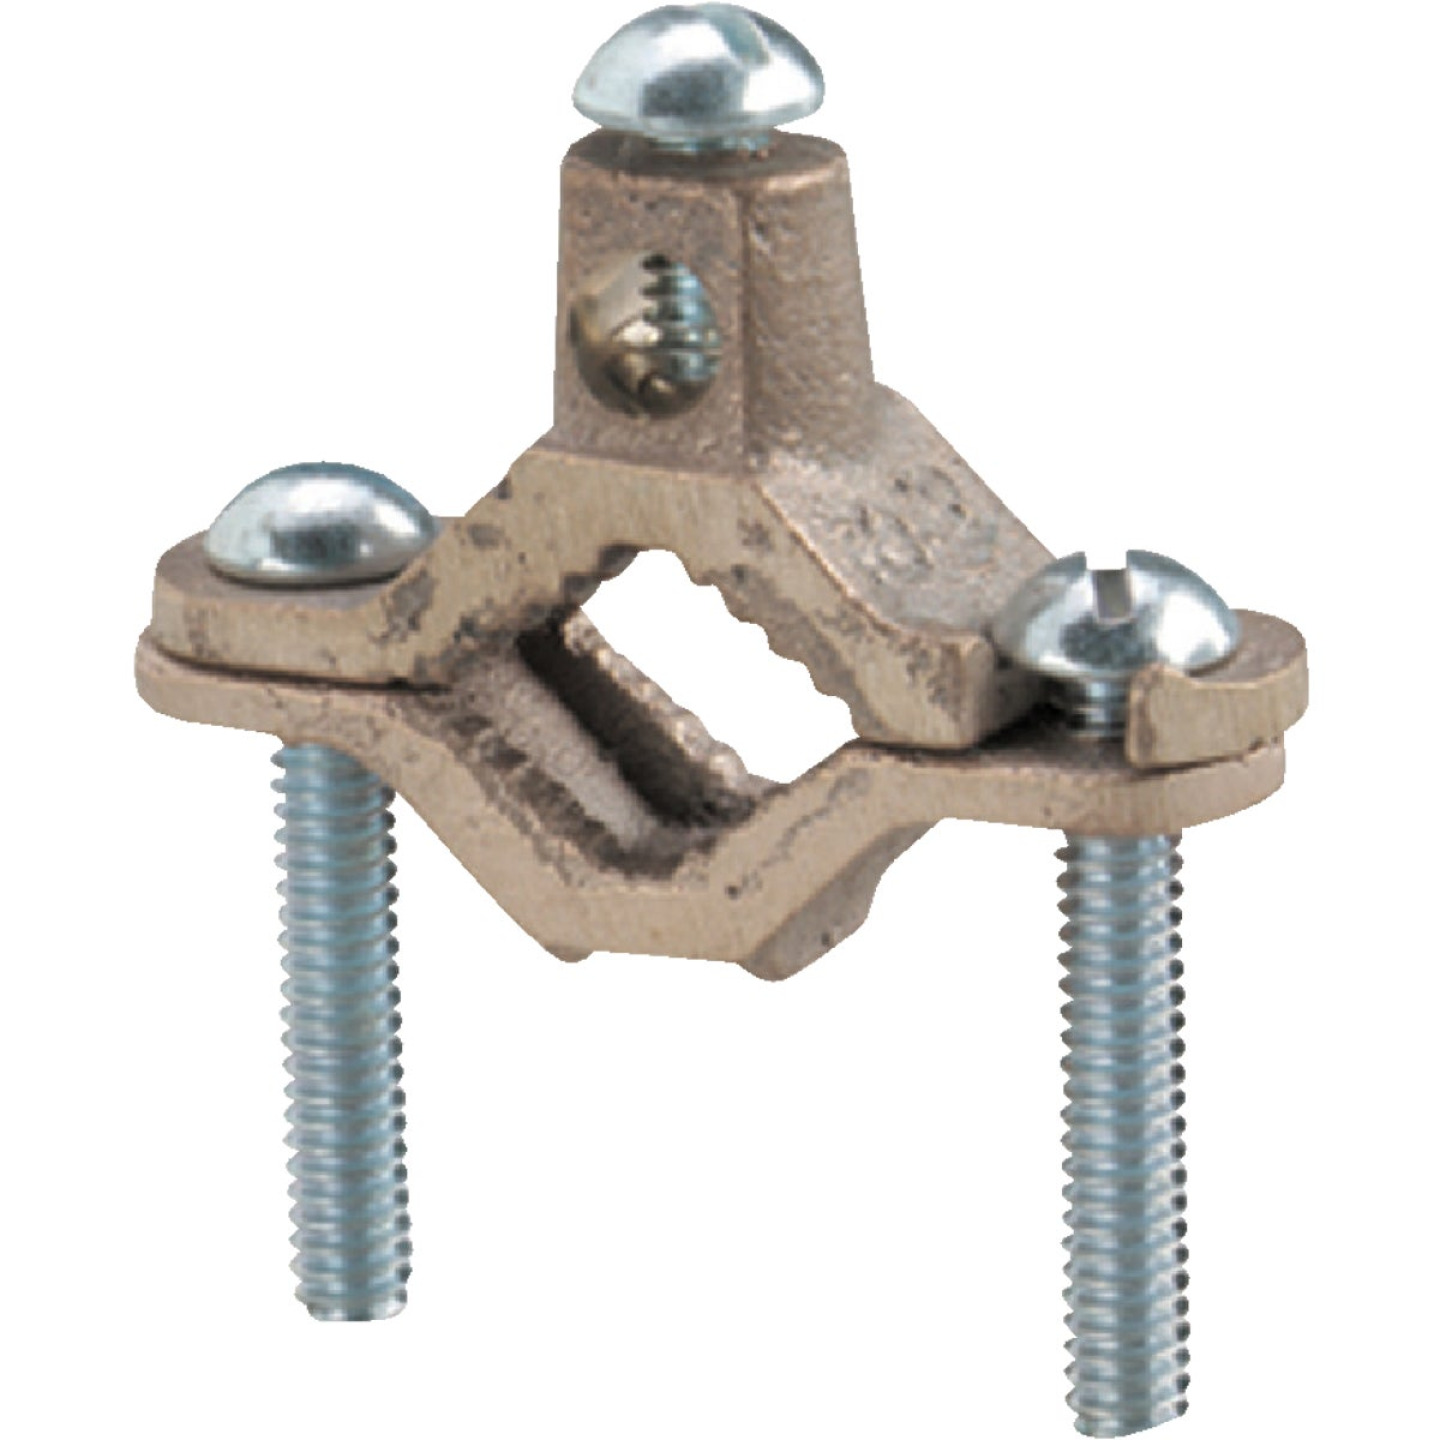 Steel City 1/2 In. to 1 In. #8 & #4 AWG Set Screw Ground Ground Clamp Image 1